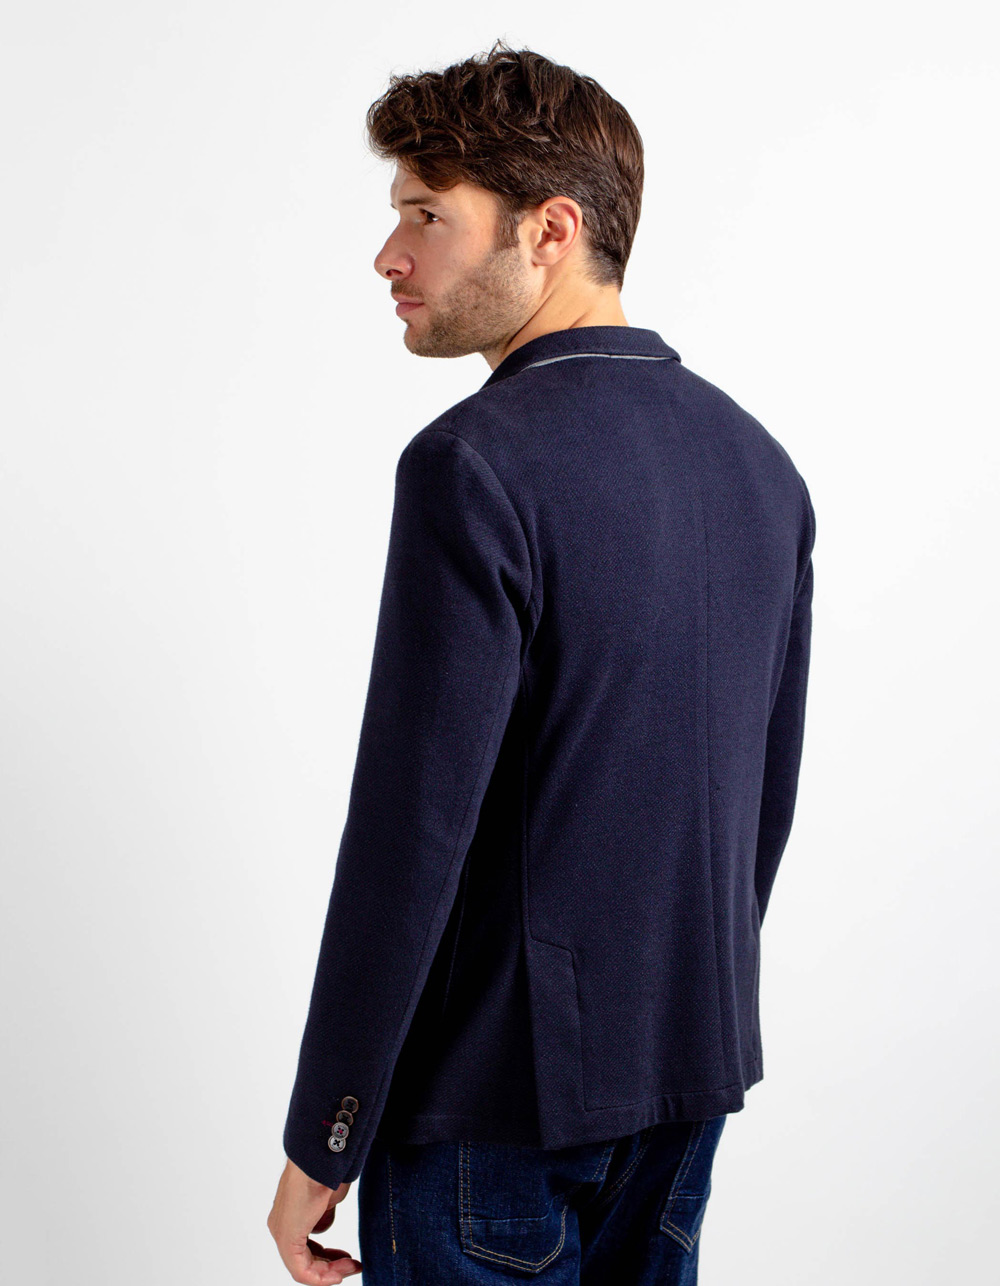 Cross blazer - Backside